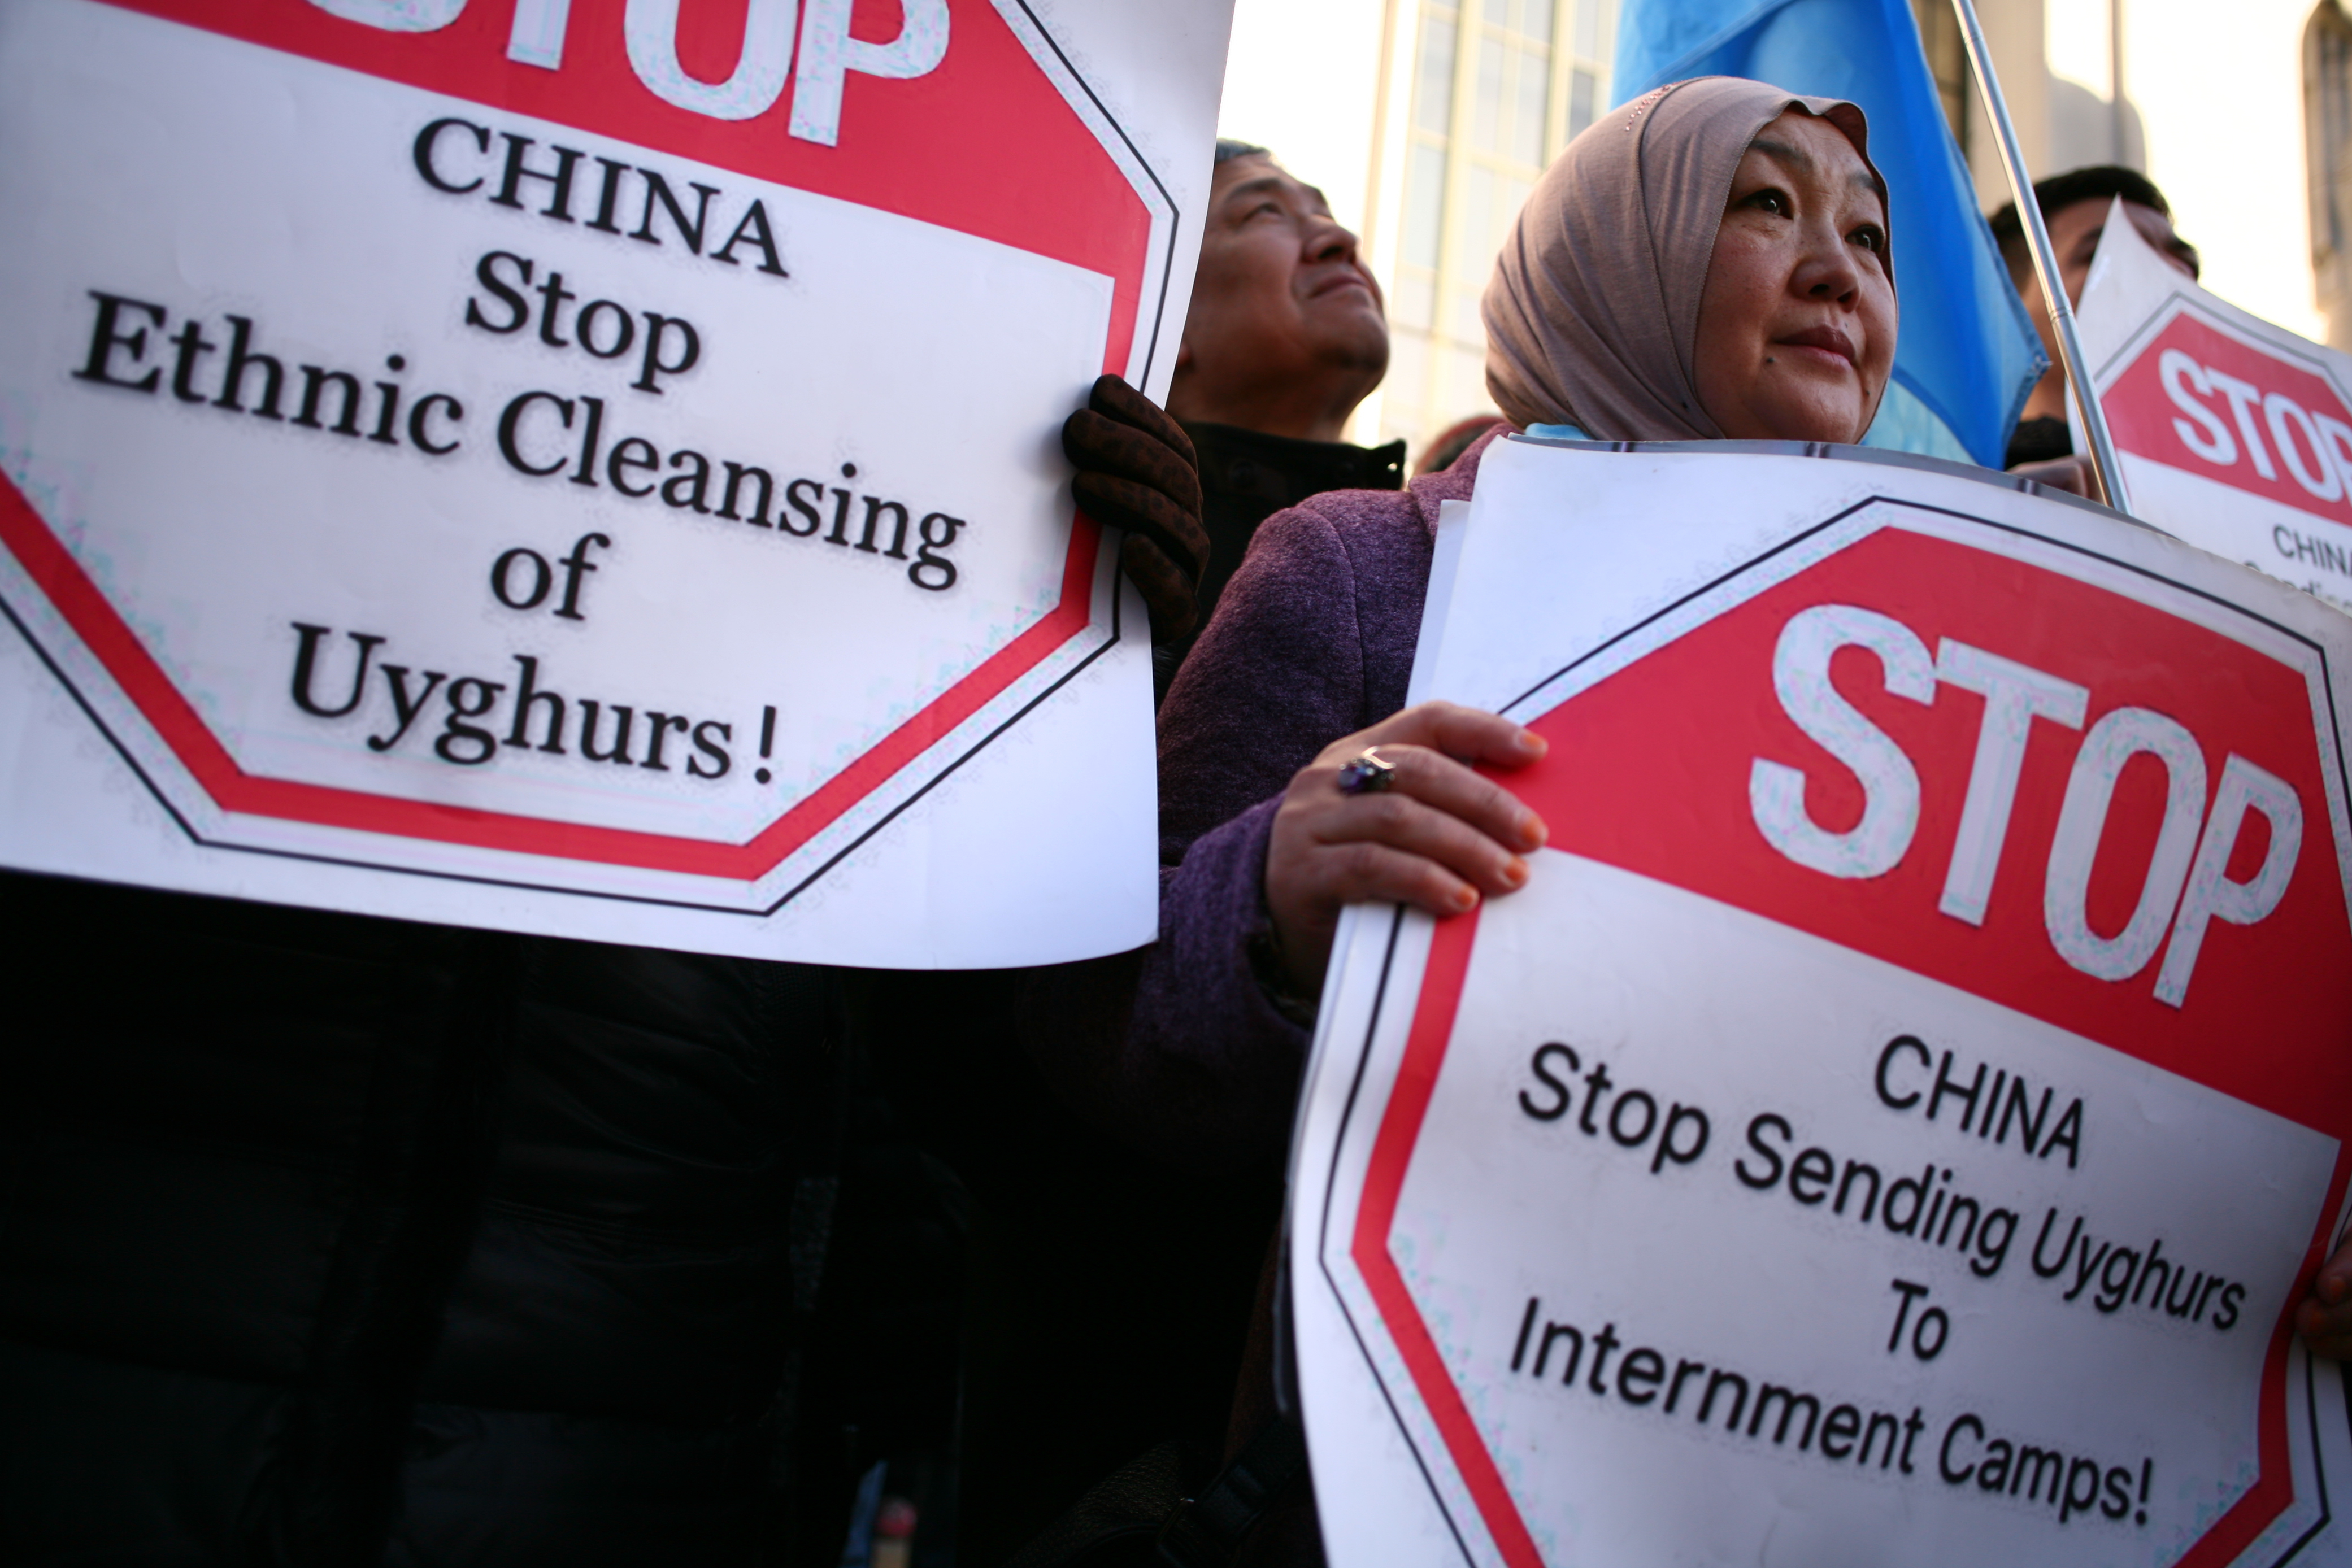 Protest for Uighur rights